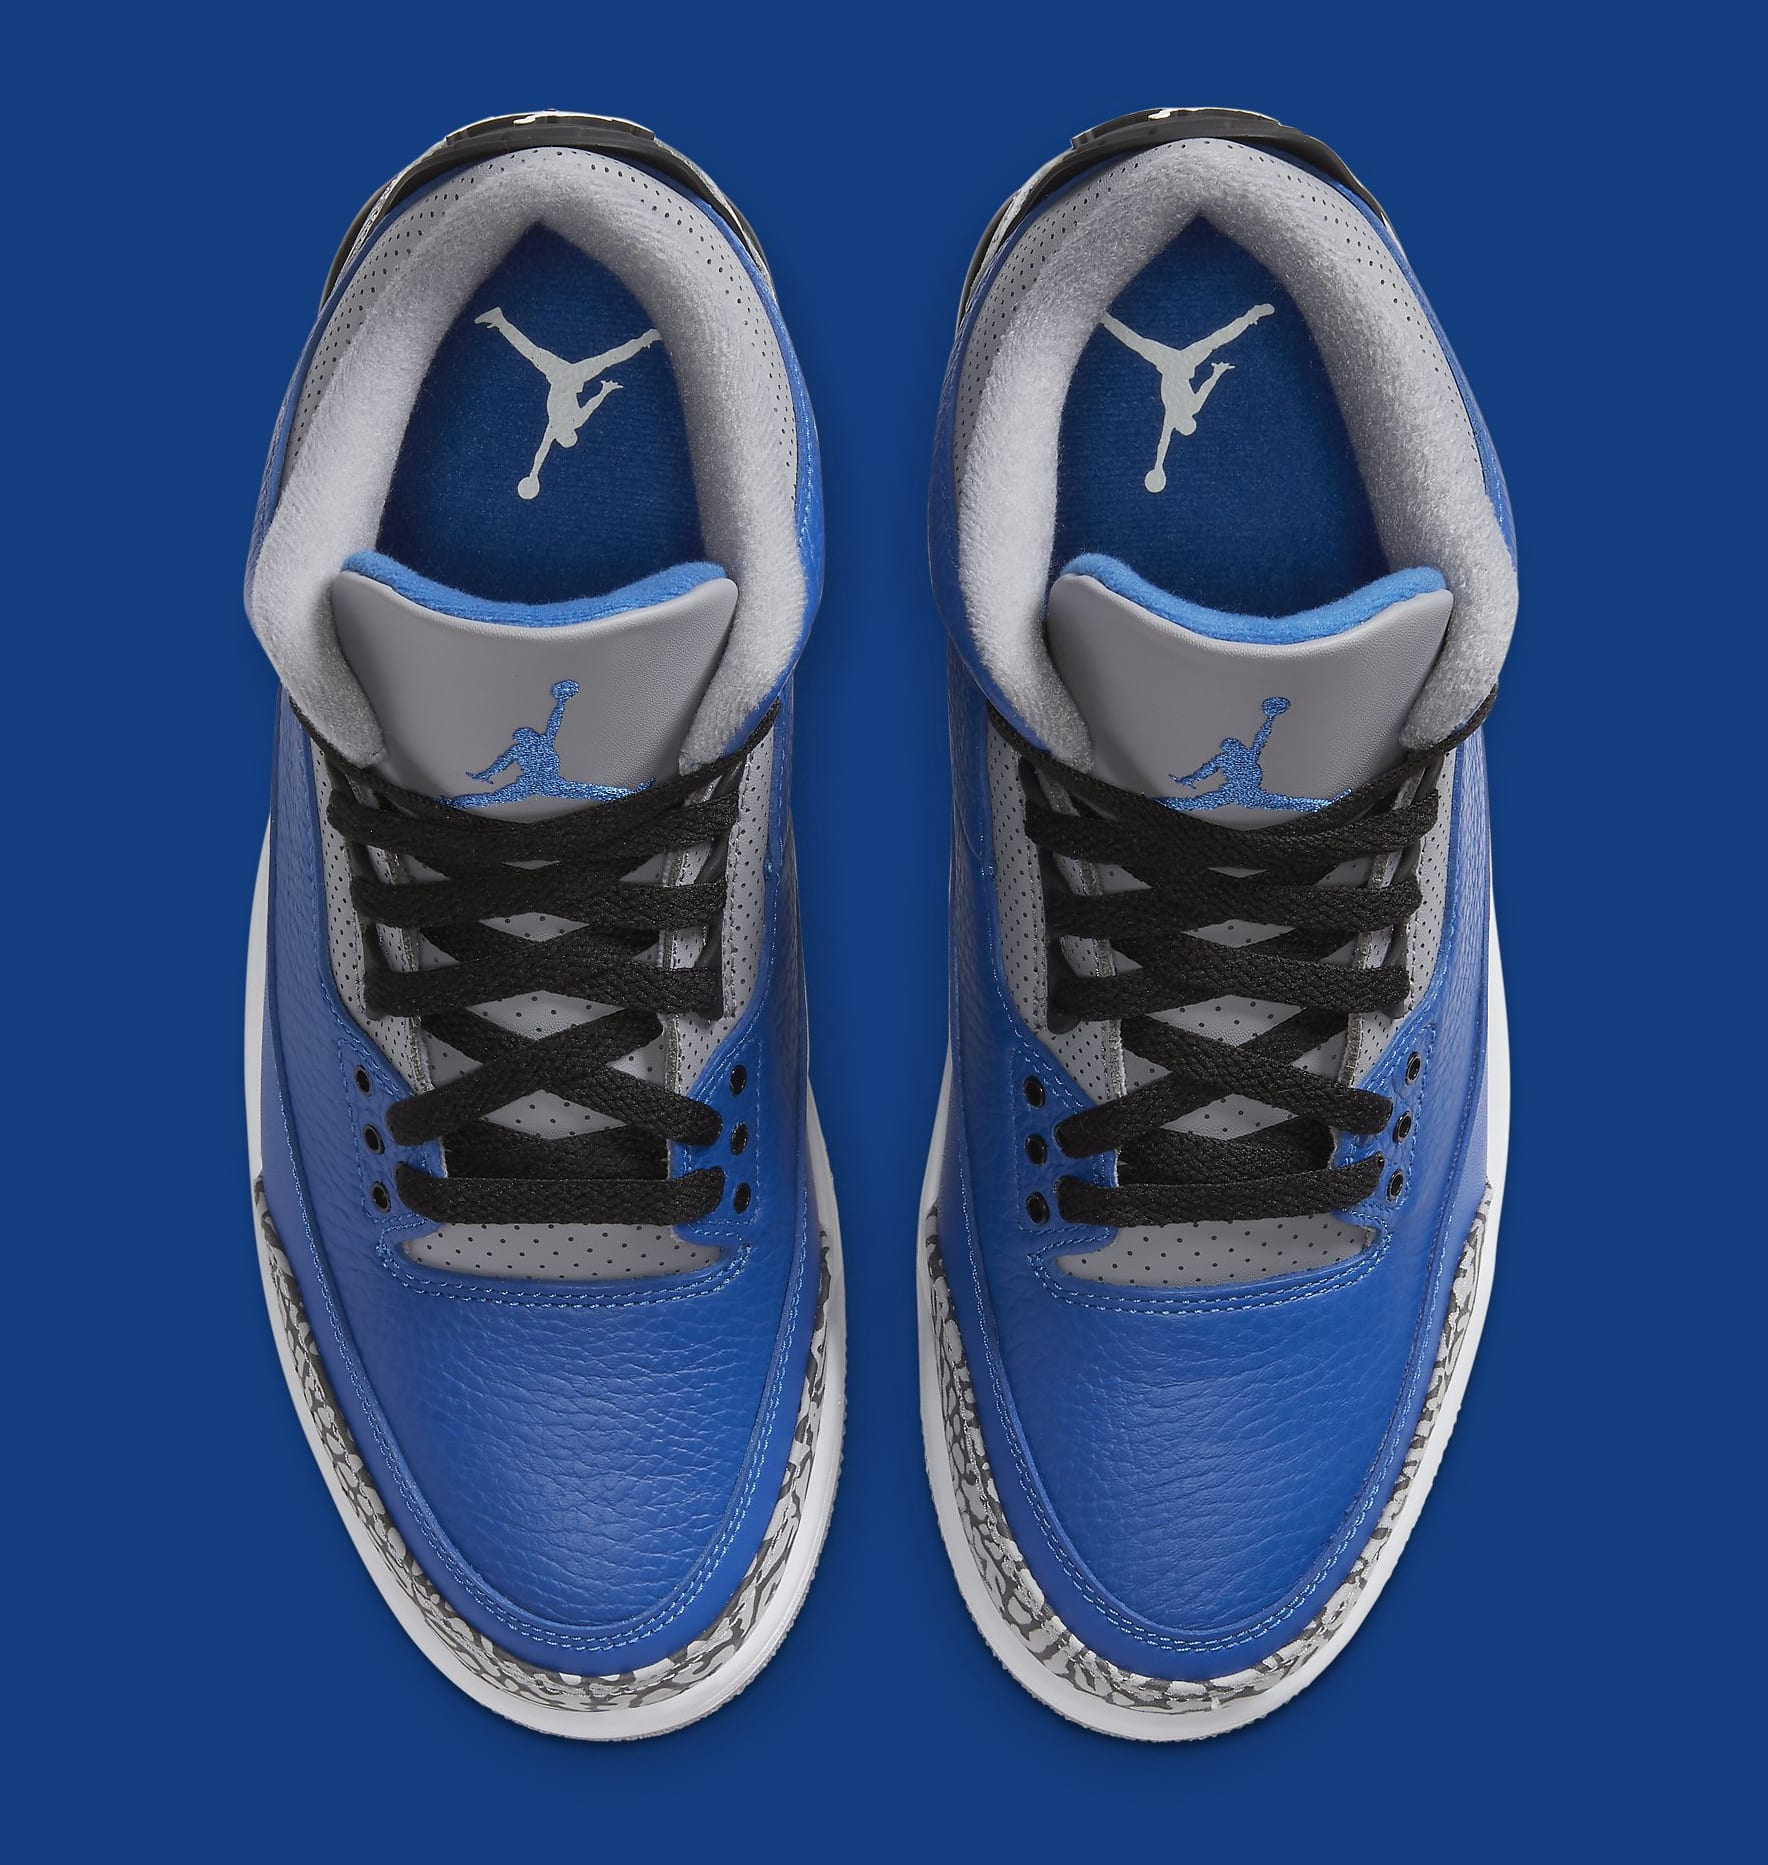 Air Jordan 3 III Retro 'Varsity Royal' CT8532-400 Top